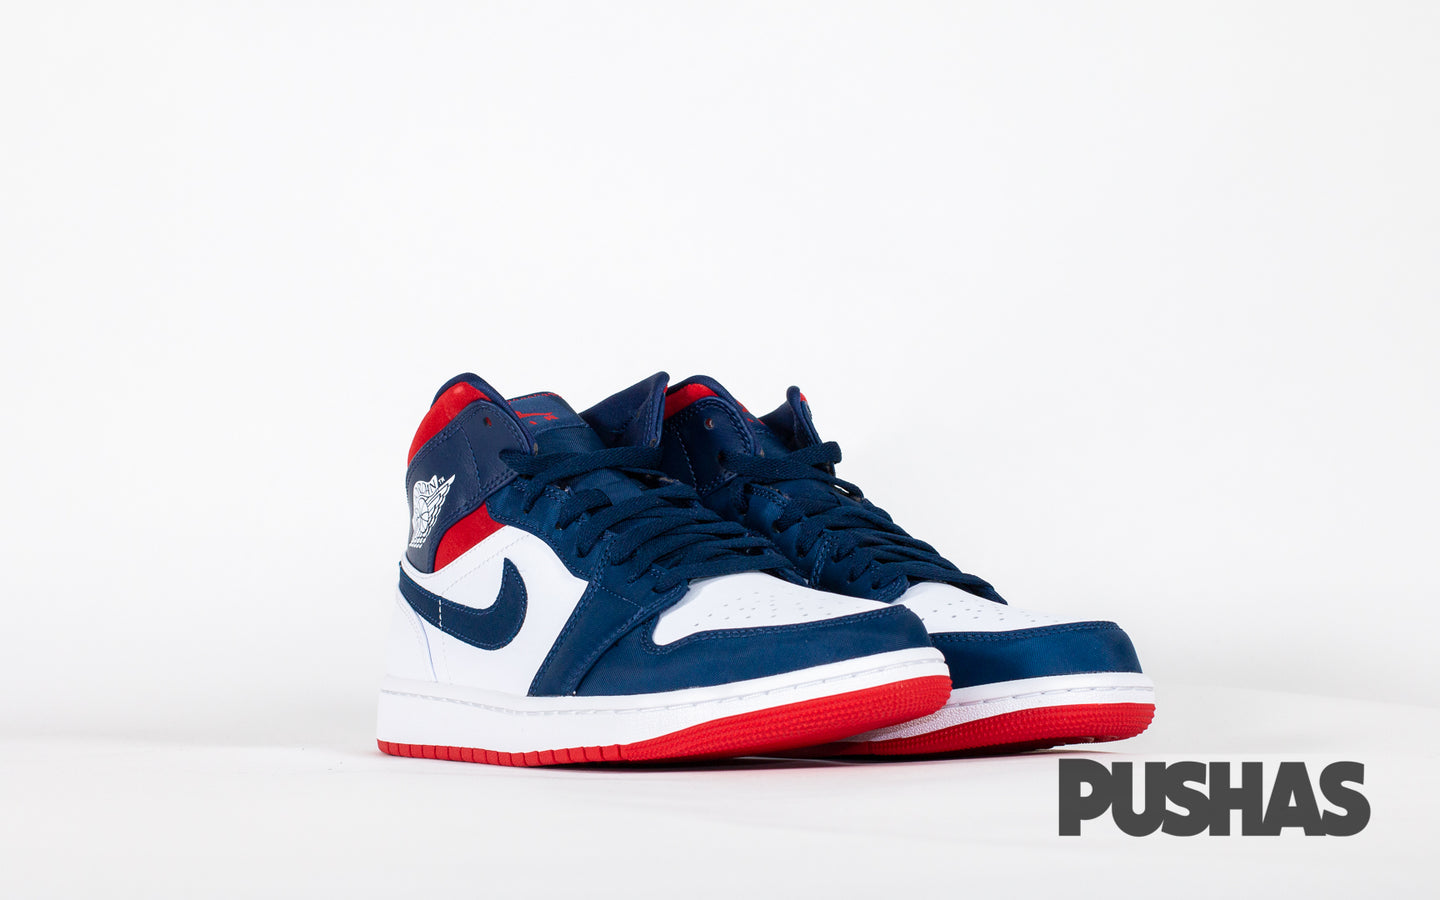 pushas-nike-Air-Jordan-1-Mid-SE-USA